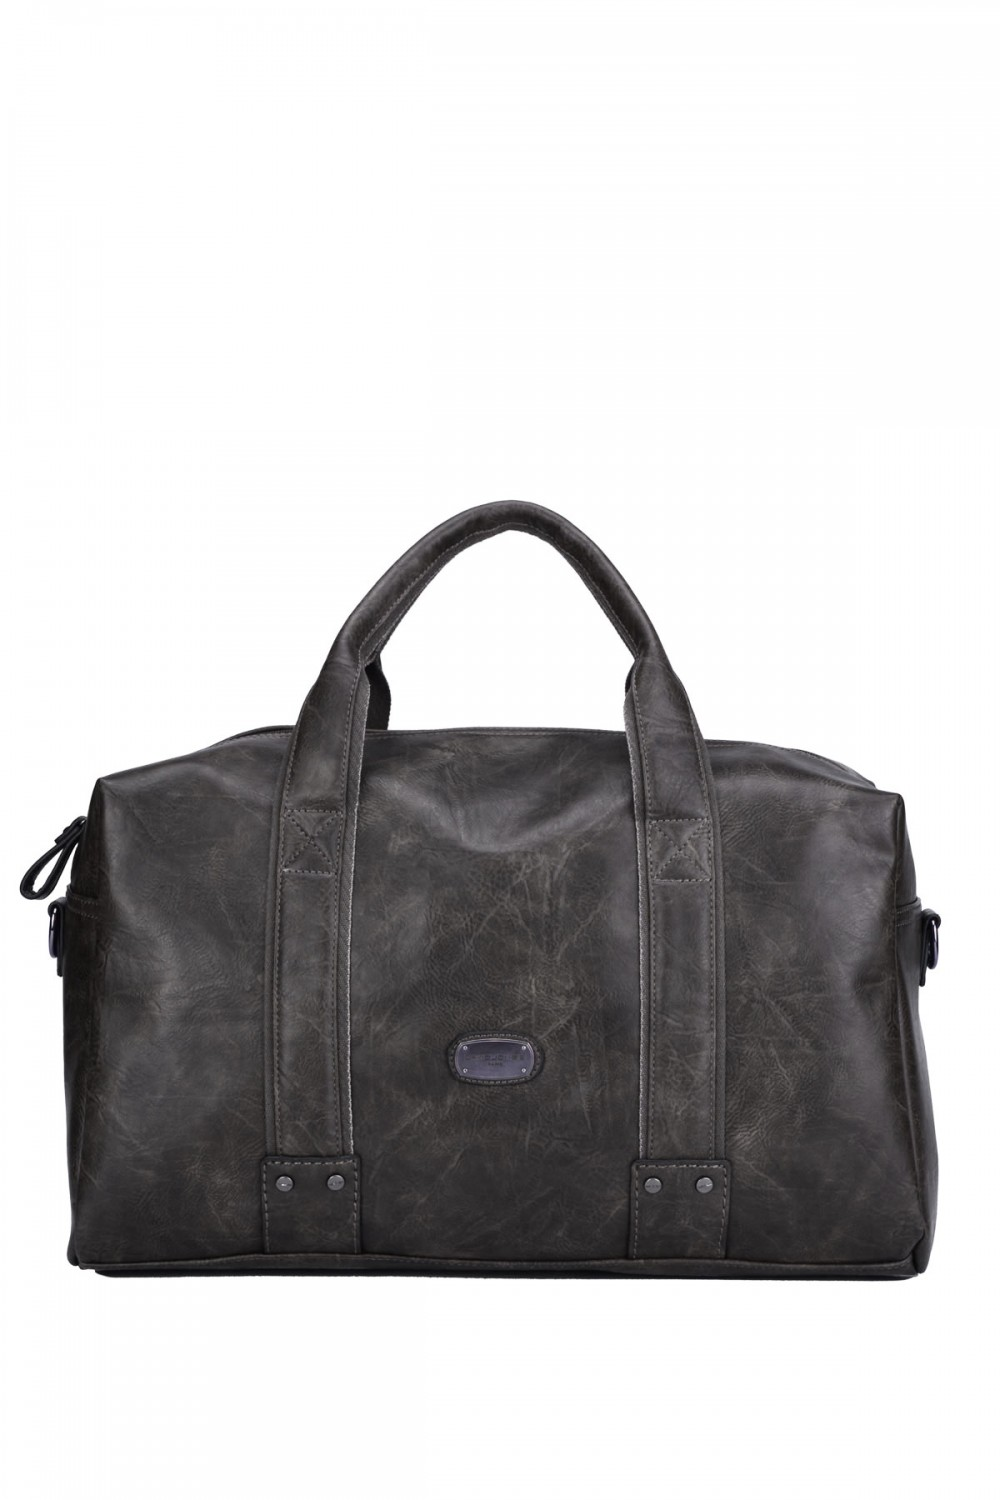 Sac de voyage / week-end David Jones - Gris